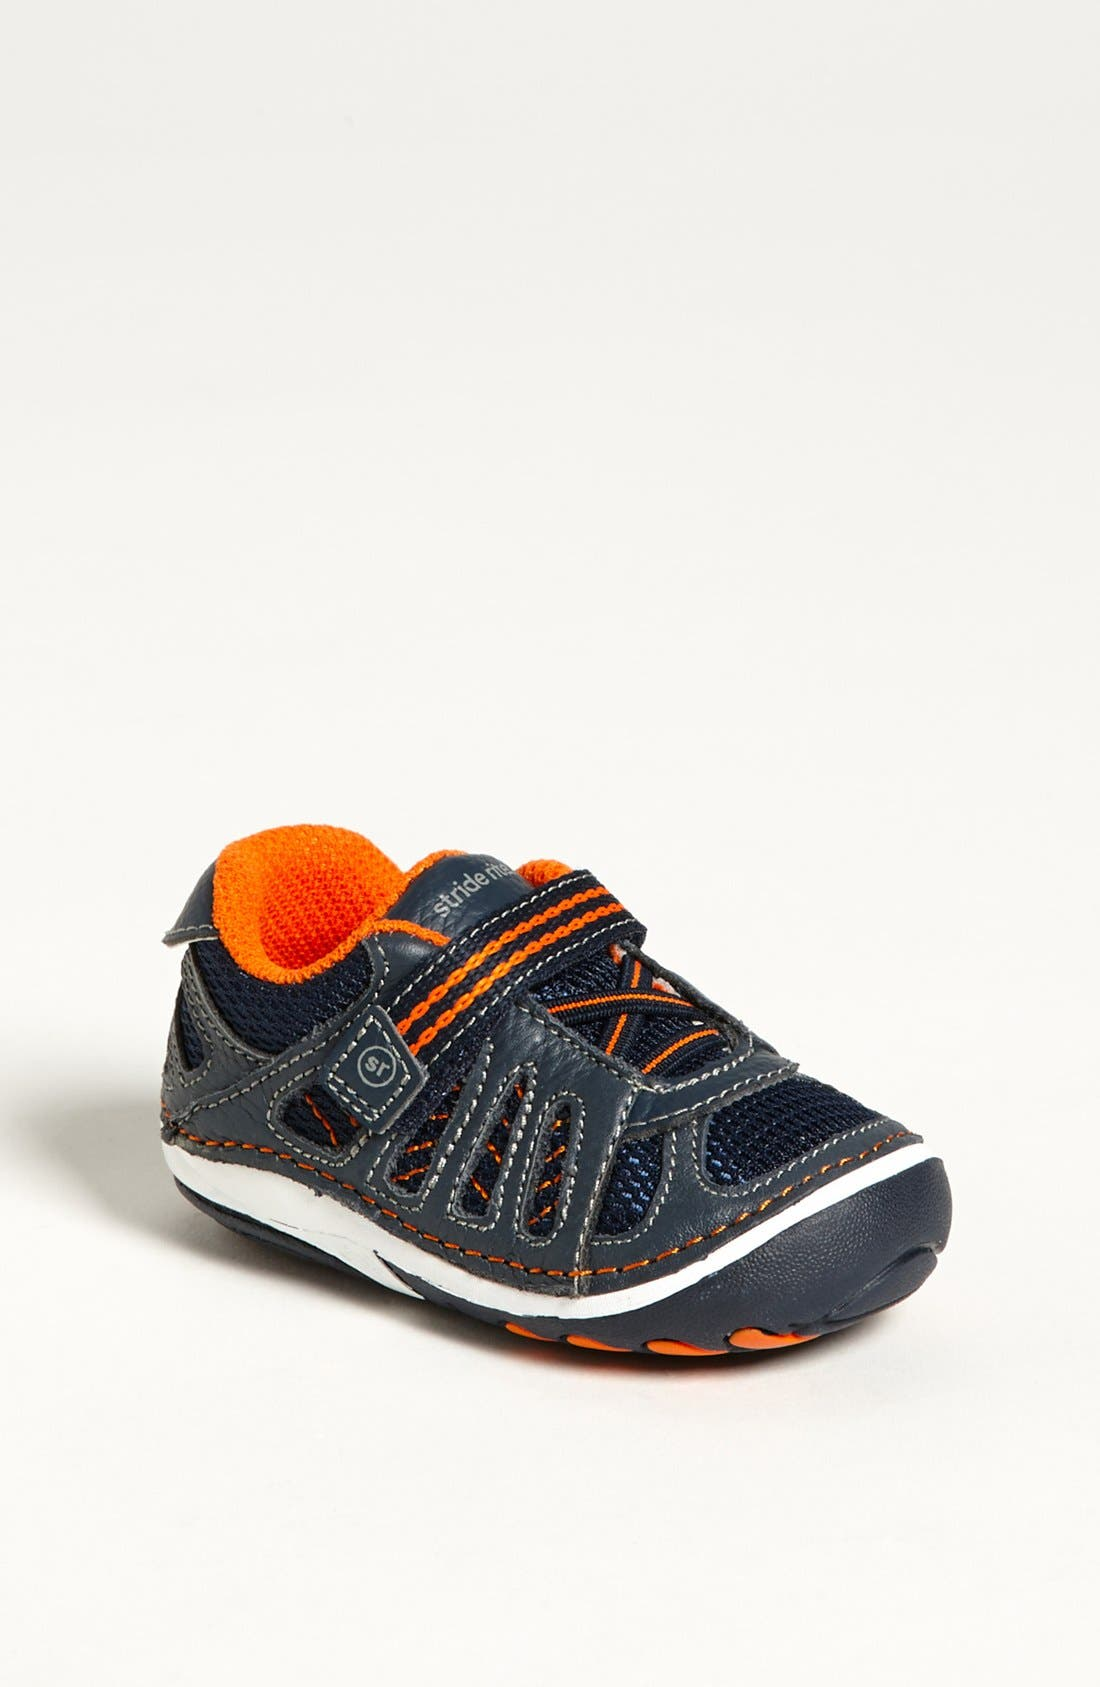 Main Image - Stride Rite 'Chip' Sneaker (Baby & Walker)